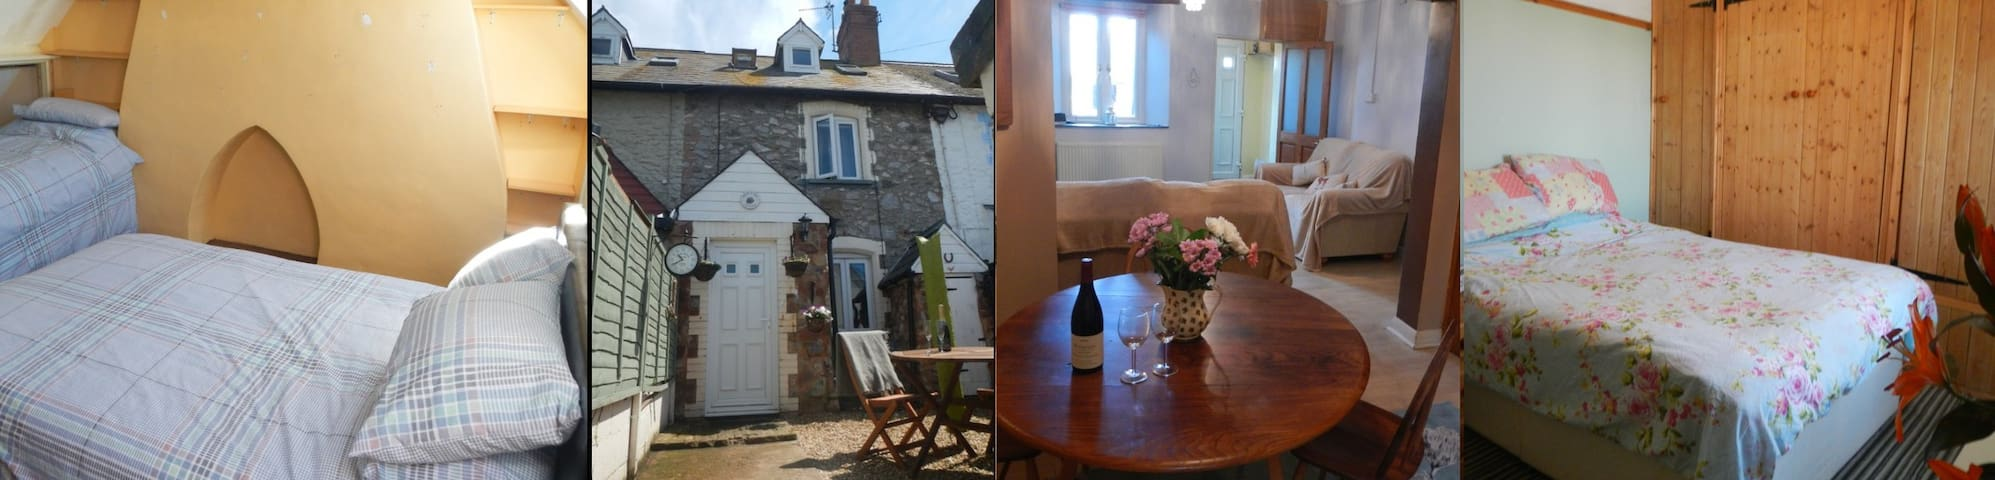 3 Bed Cottage in Sea Side Town Watchet near Exmoor - Watchet - House